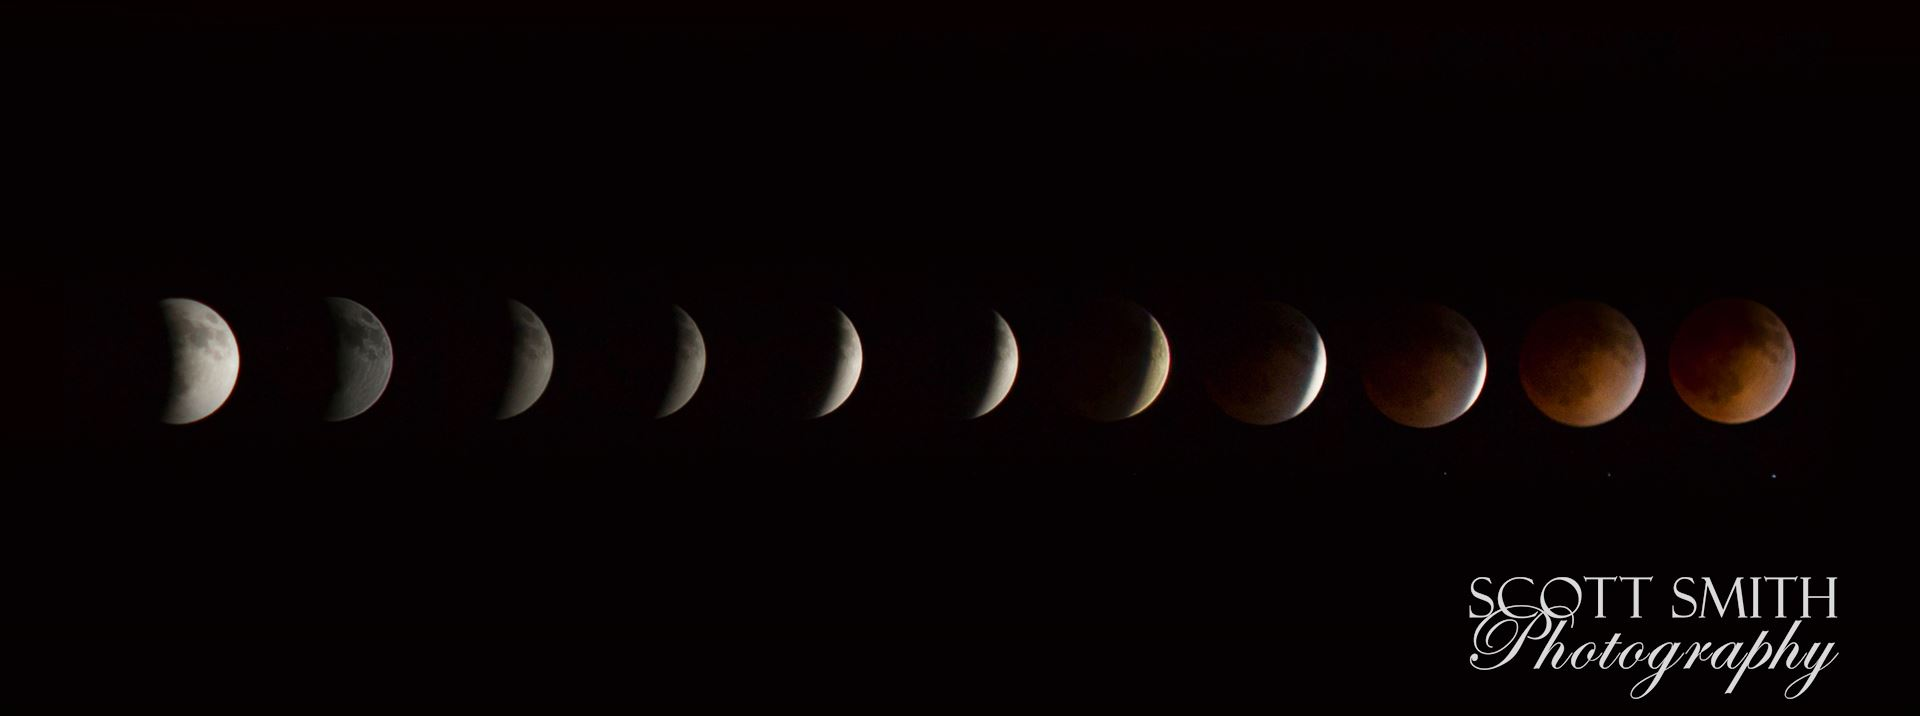 2014 Blood Moon Collage - Lunar eclipse and blood moon, 4/15/2014.  Shot as separate frames with a 100mm Canon f/2.8 and assembled in Photoshop. by D Scott Smith